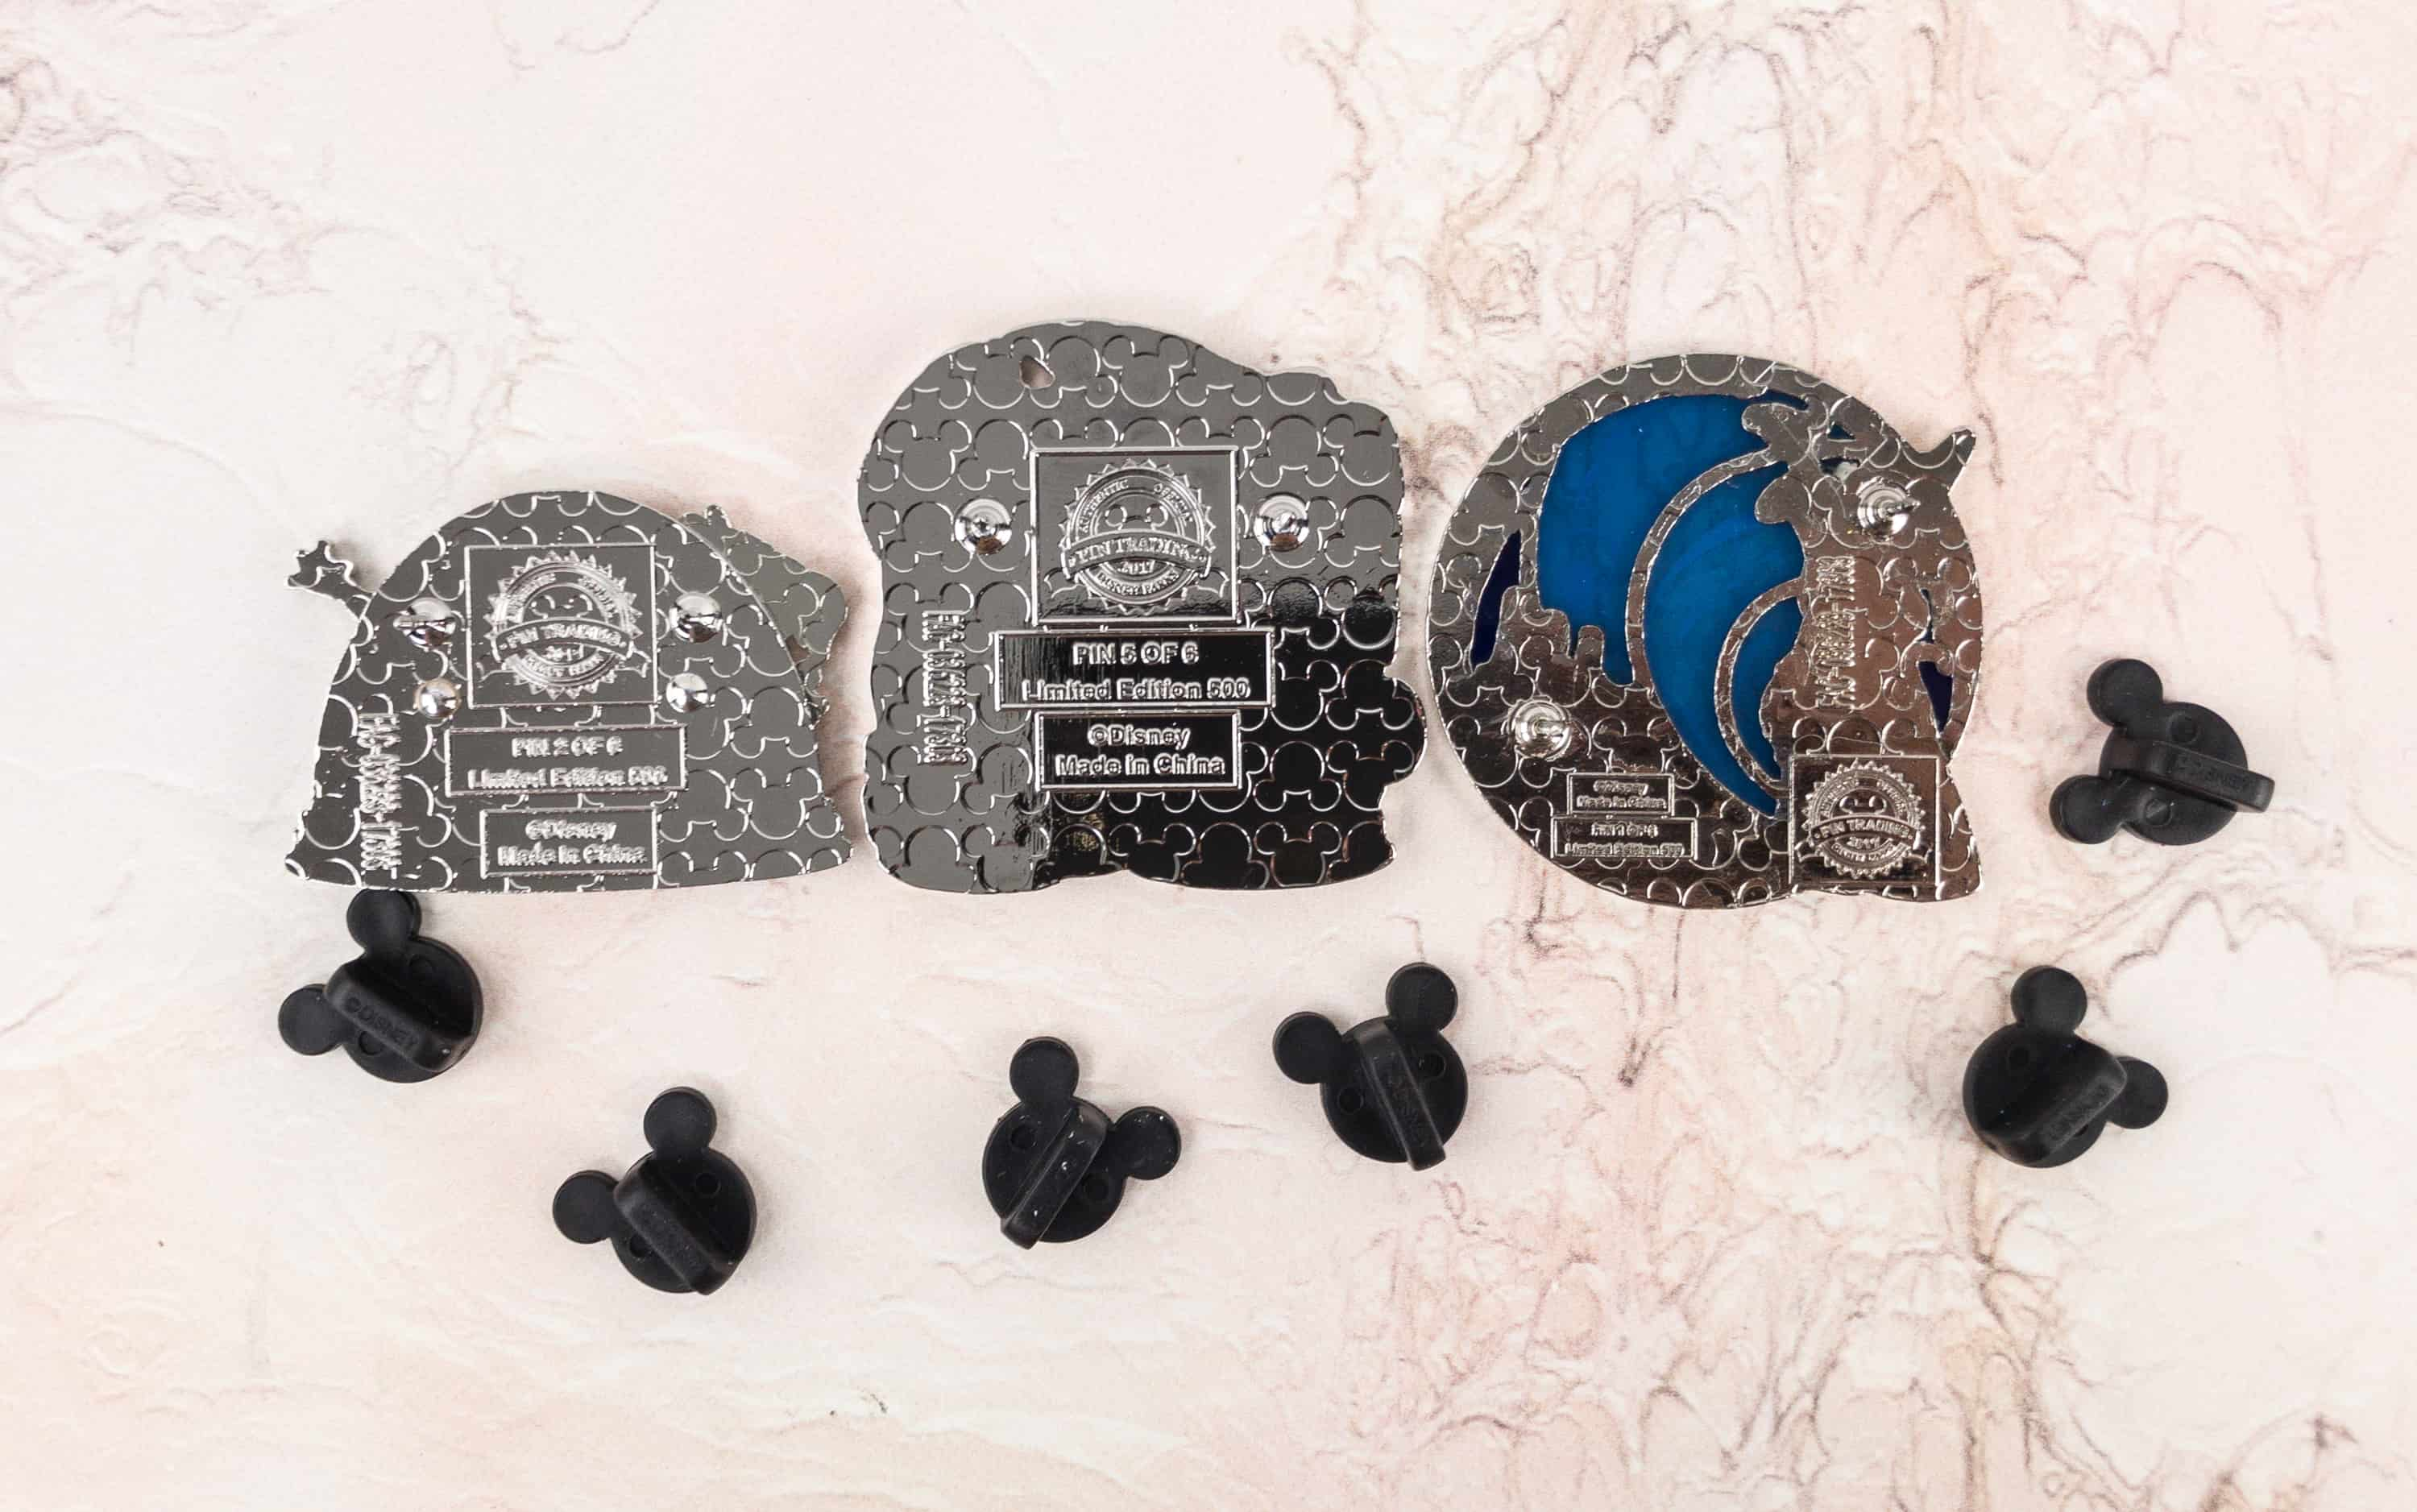 All The Pins This Month Came With Two Posts That Fit A Rubber Mickey Pin Back There Are 6 Variants Of Each And 500